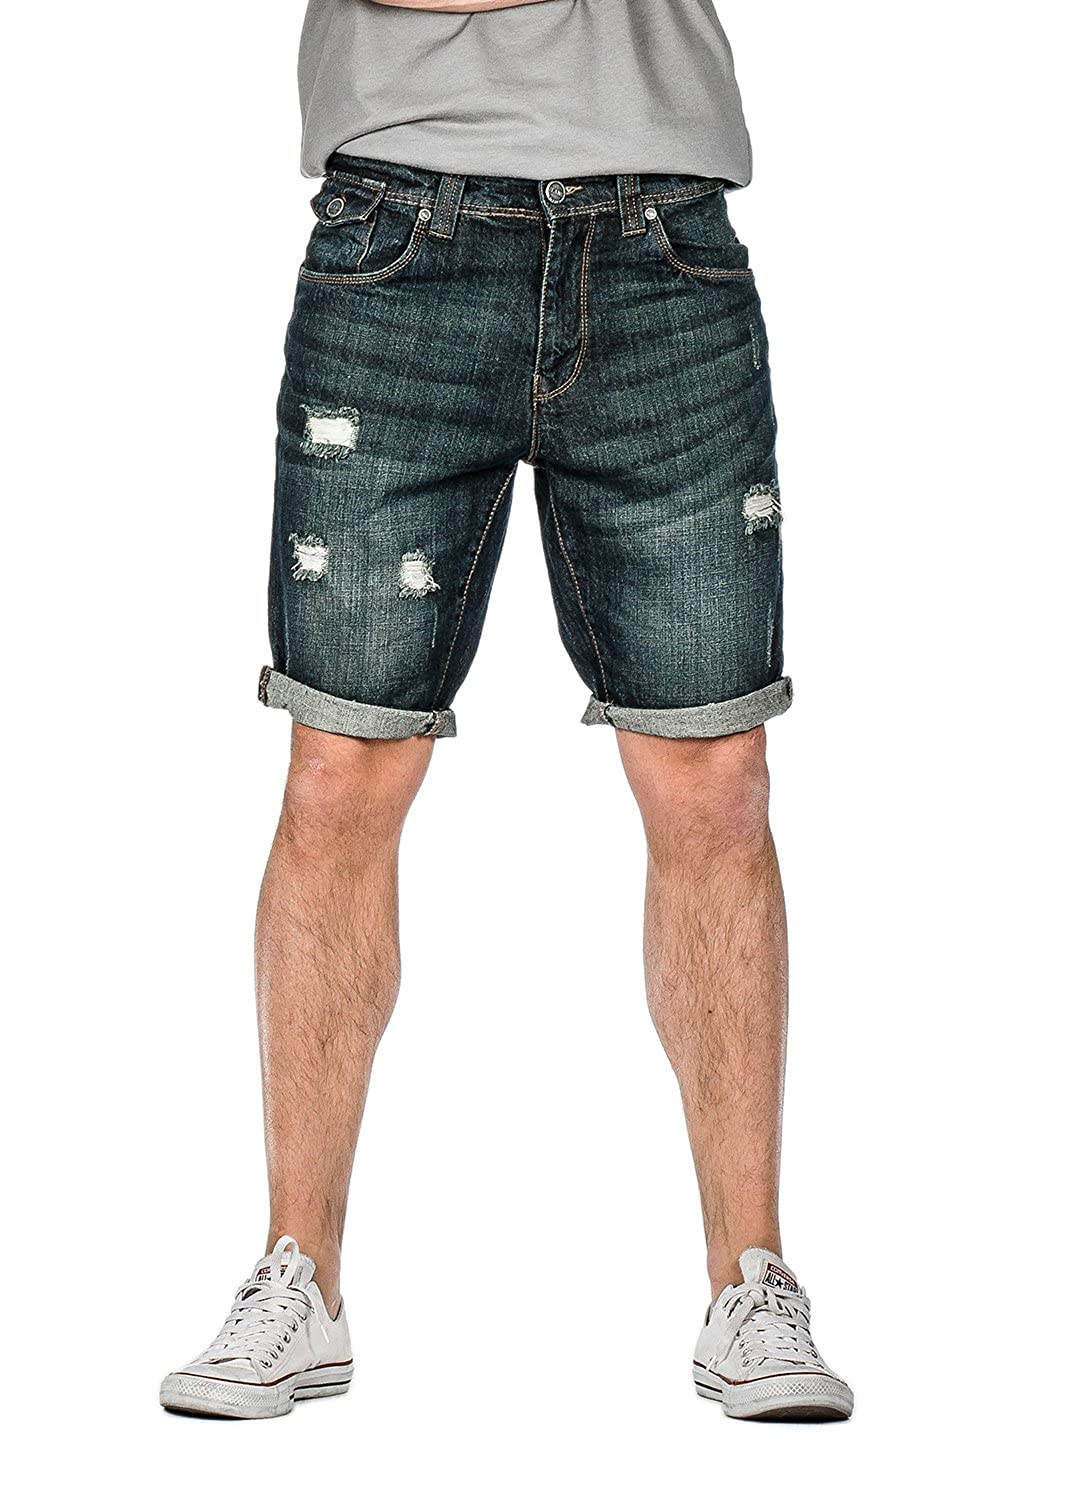 Suko Jeans Ripped Jean Shorts for Men Blue Black with Roll Up Cuff